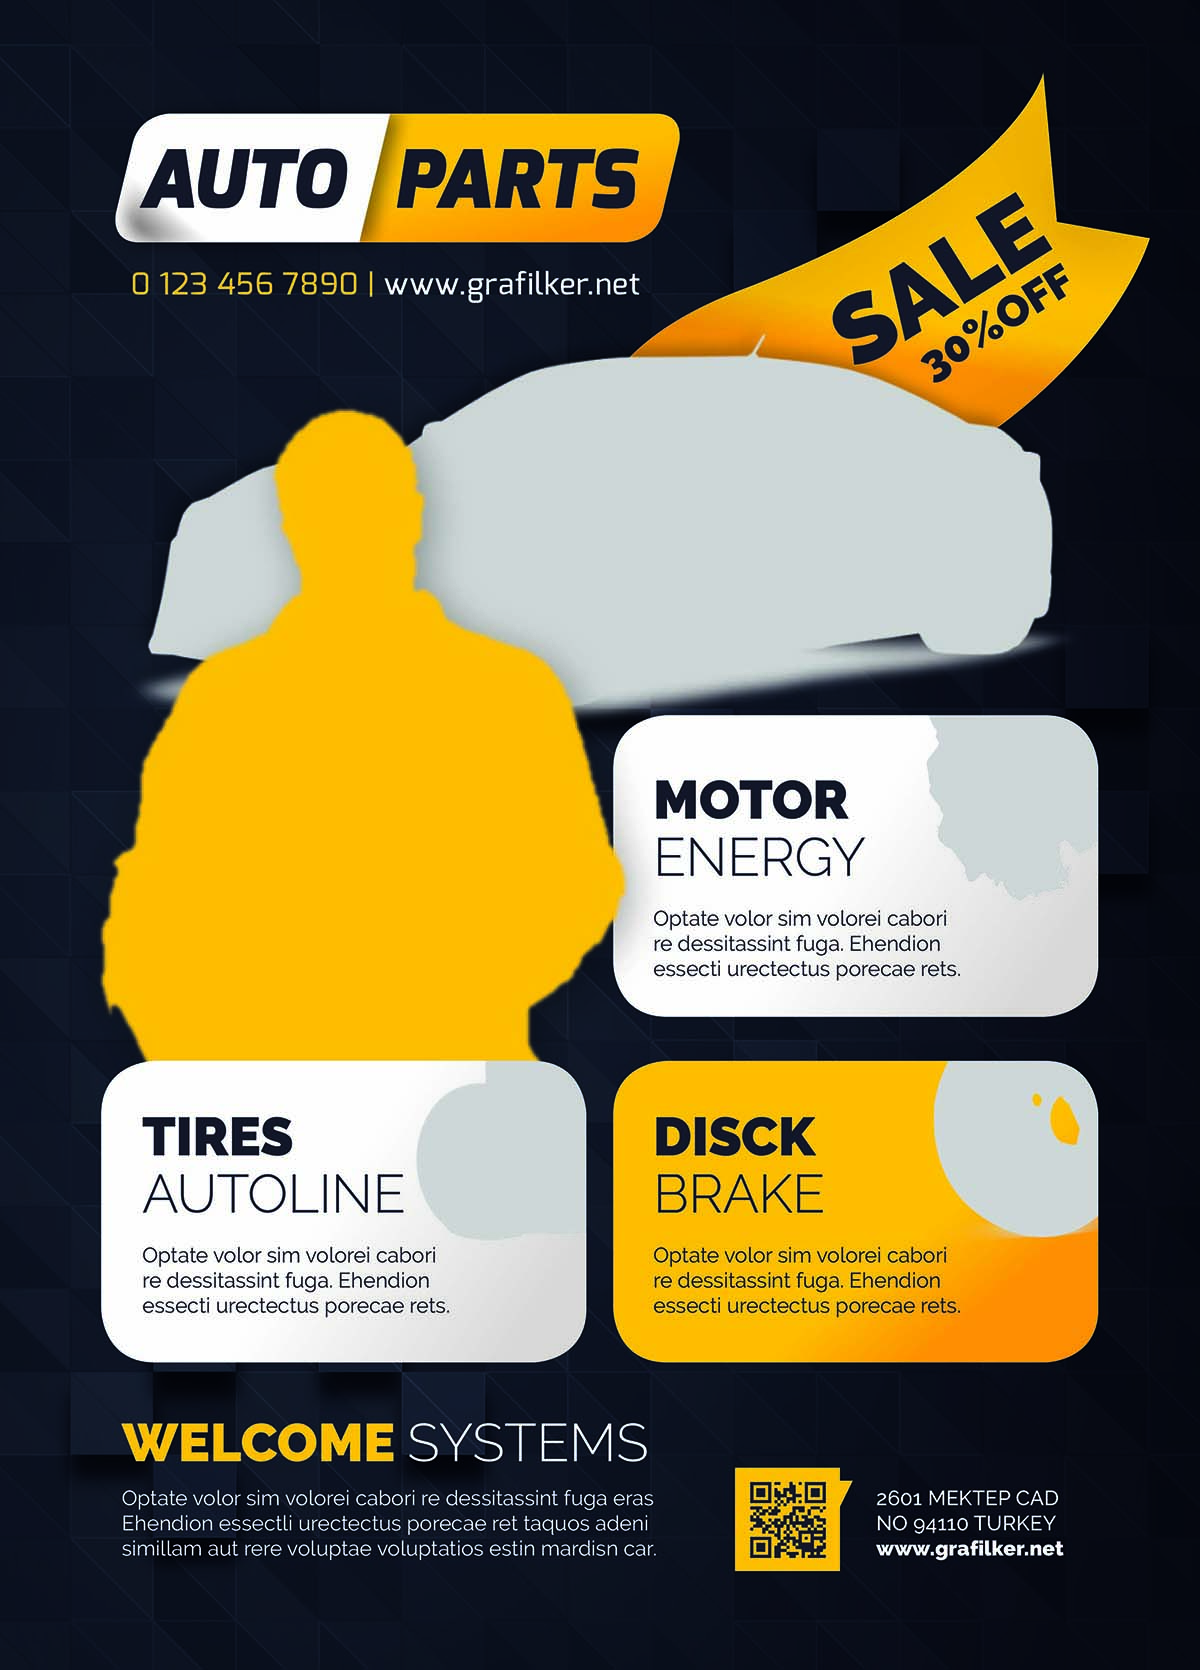 auto spare parts flyer design free download